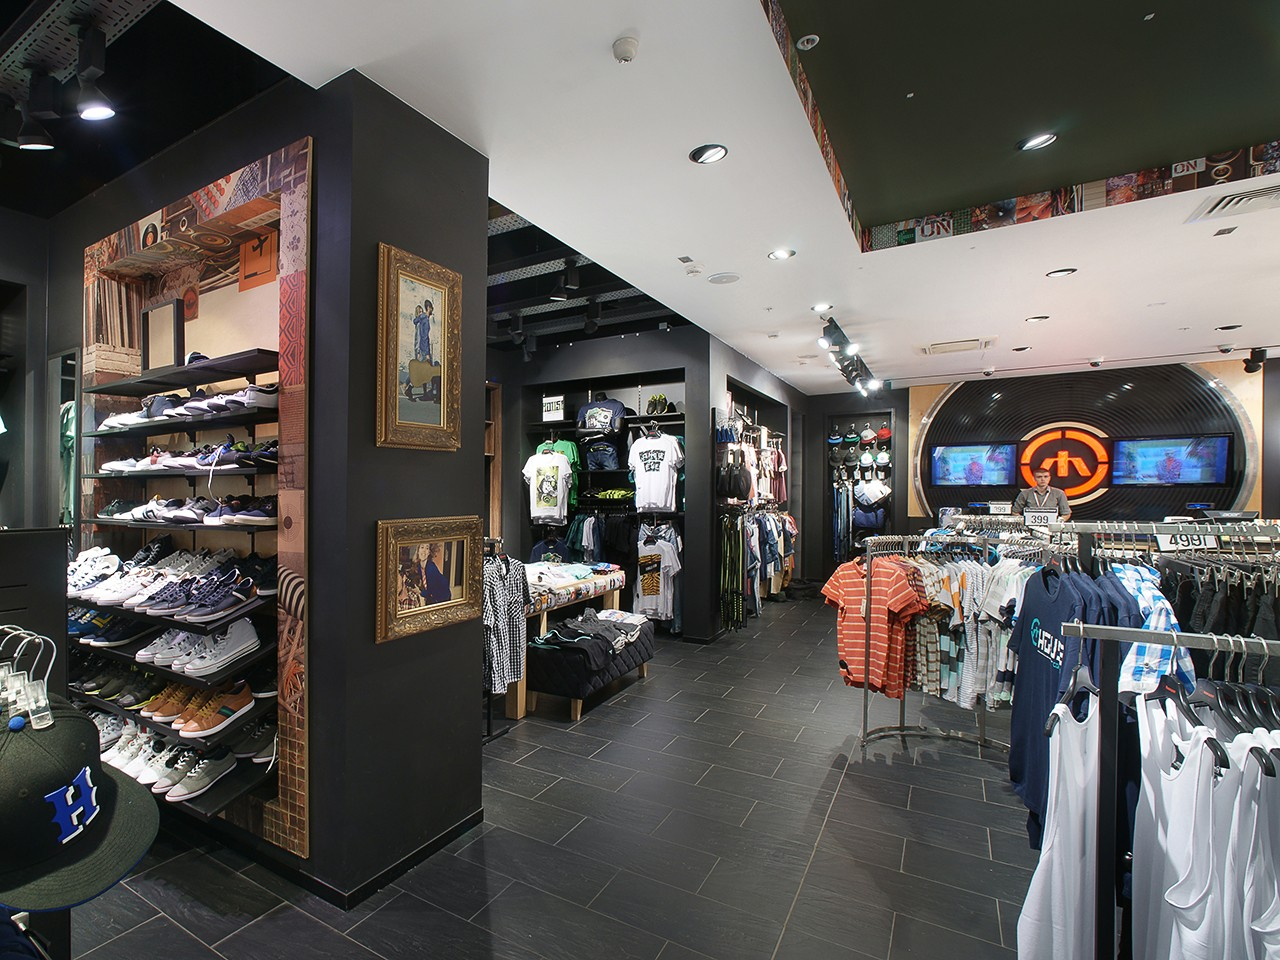 House store interior shot